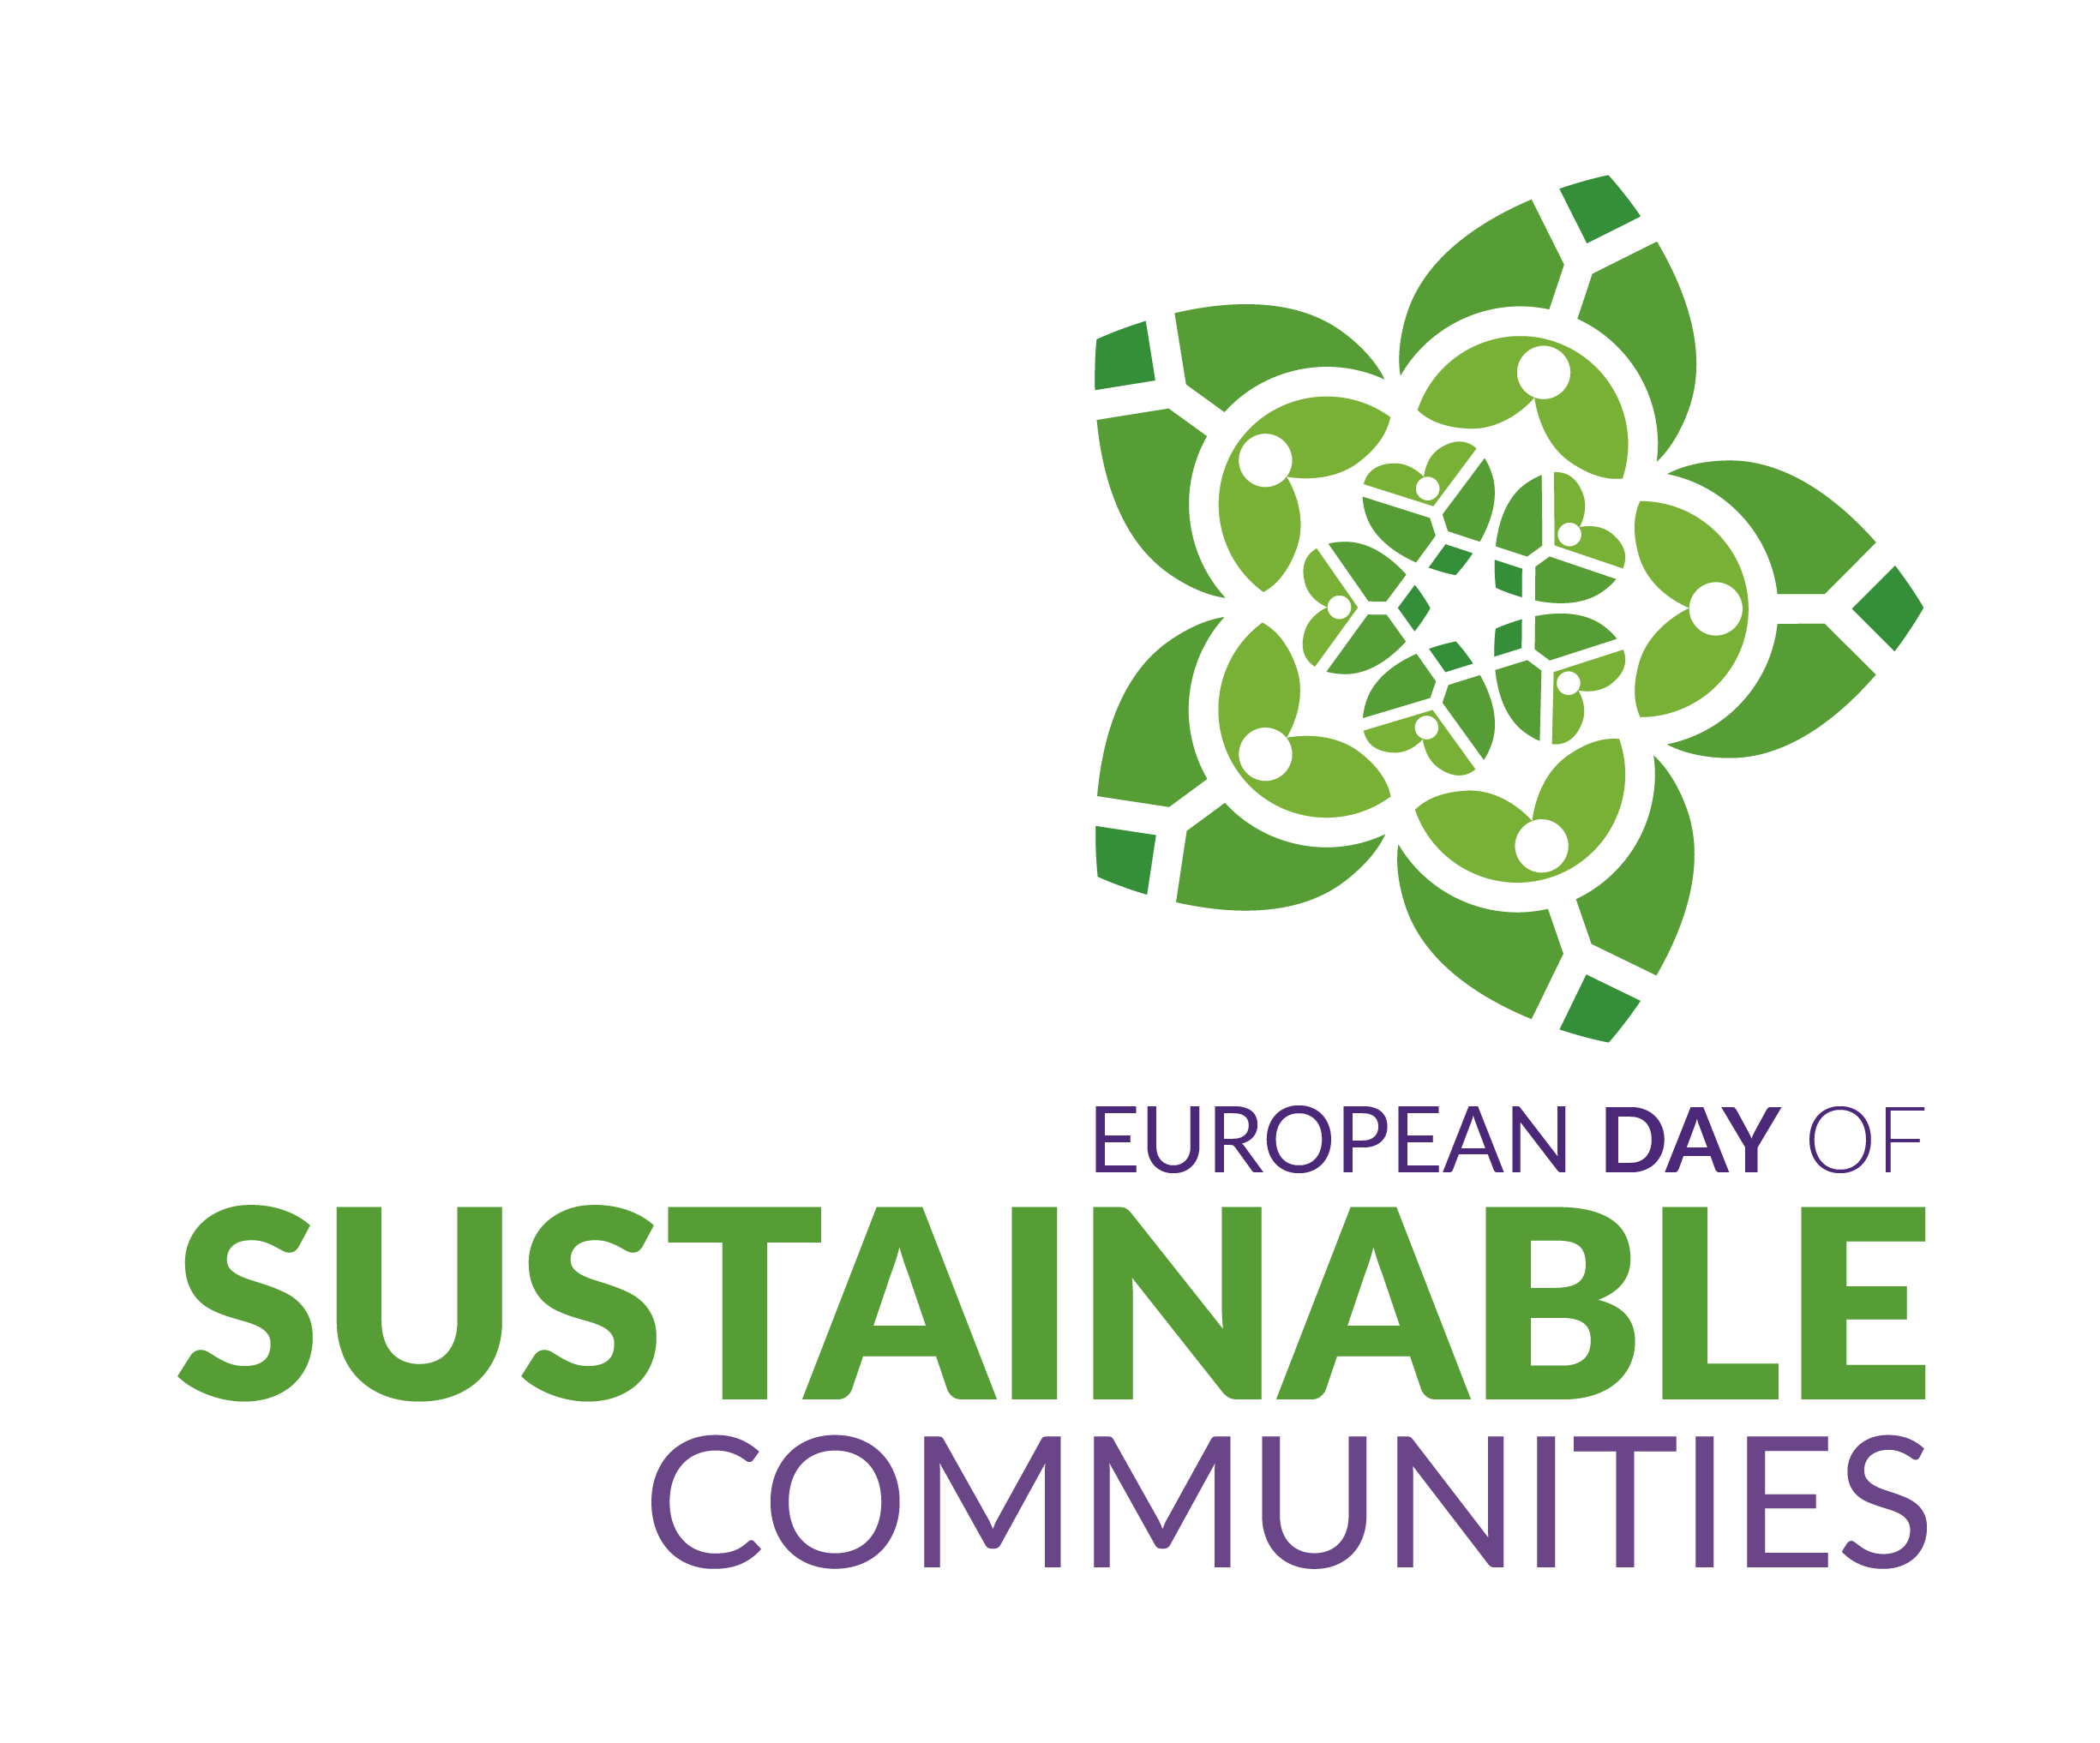 European Day of Sustainable Communities